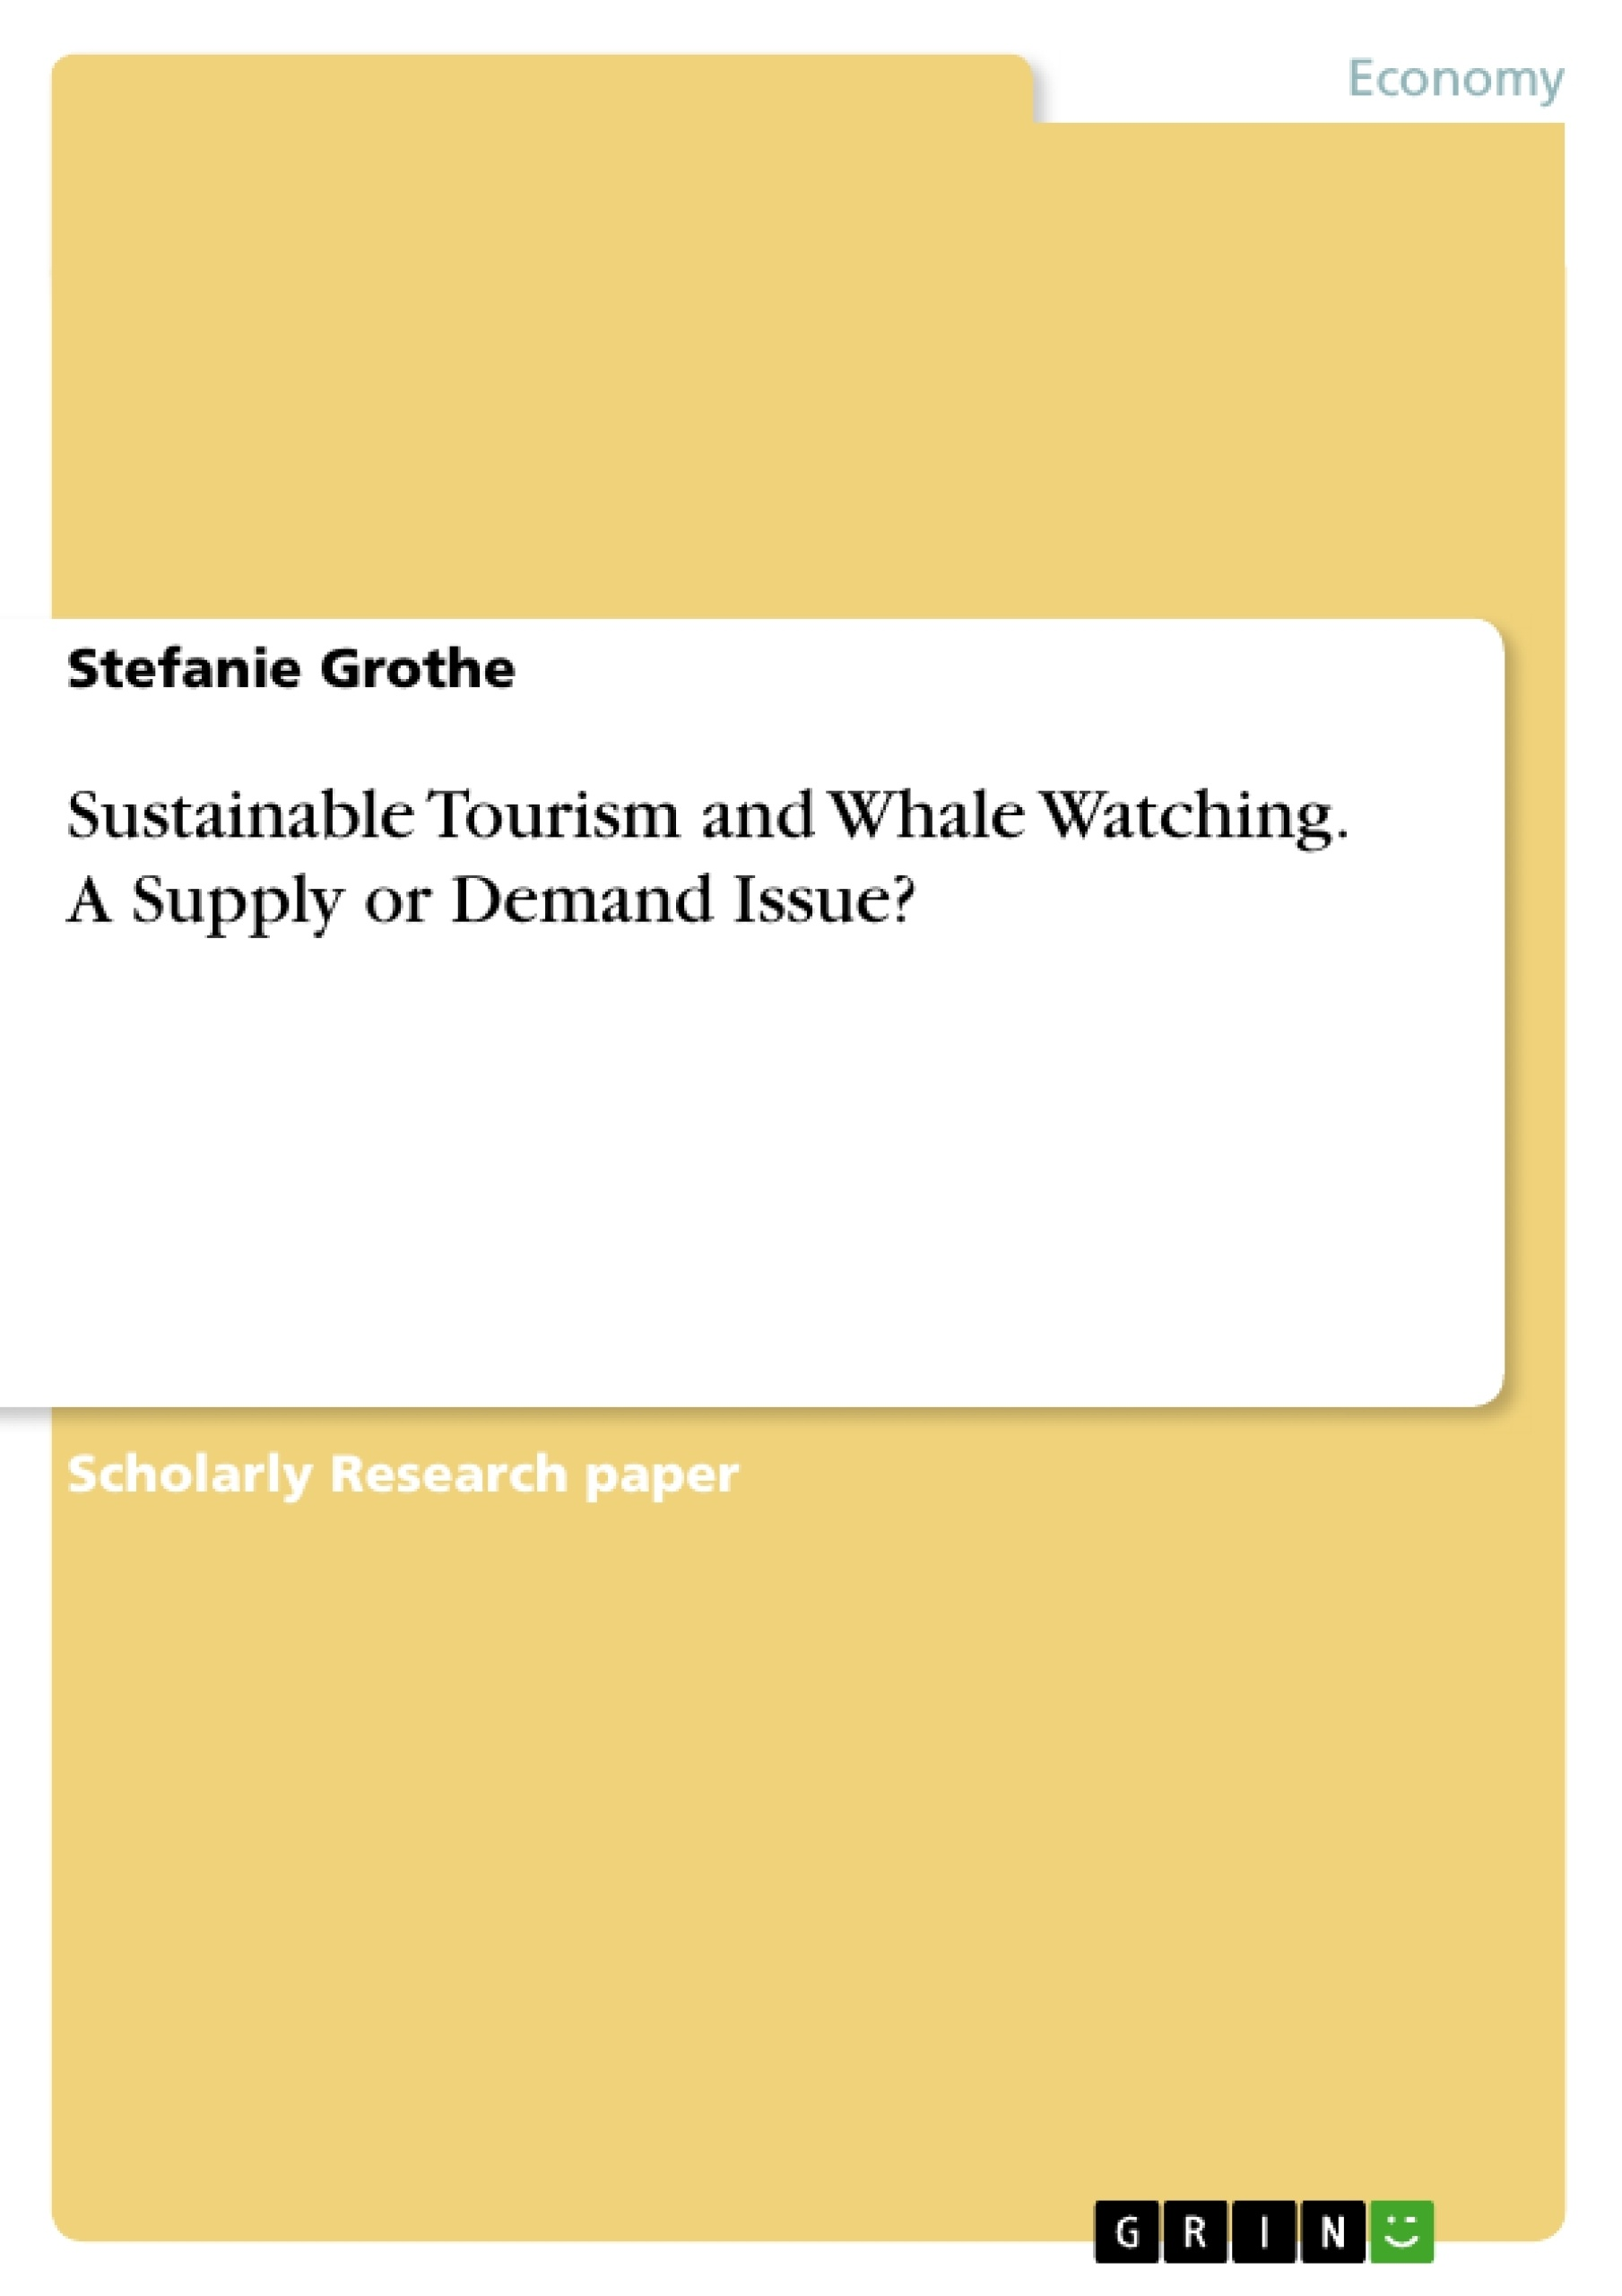 Title: Sustainable Tourism and Whale Watching. A Supply or Demand Issue?